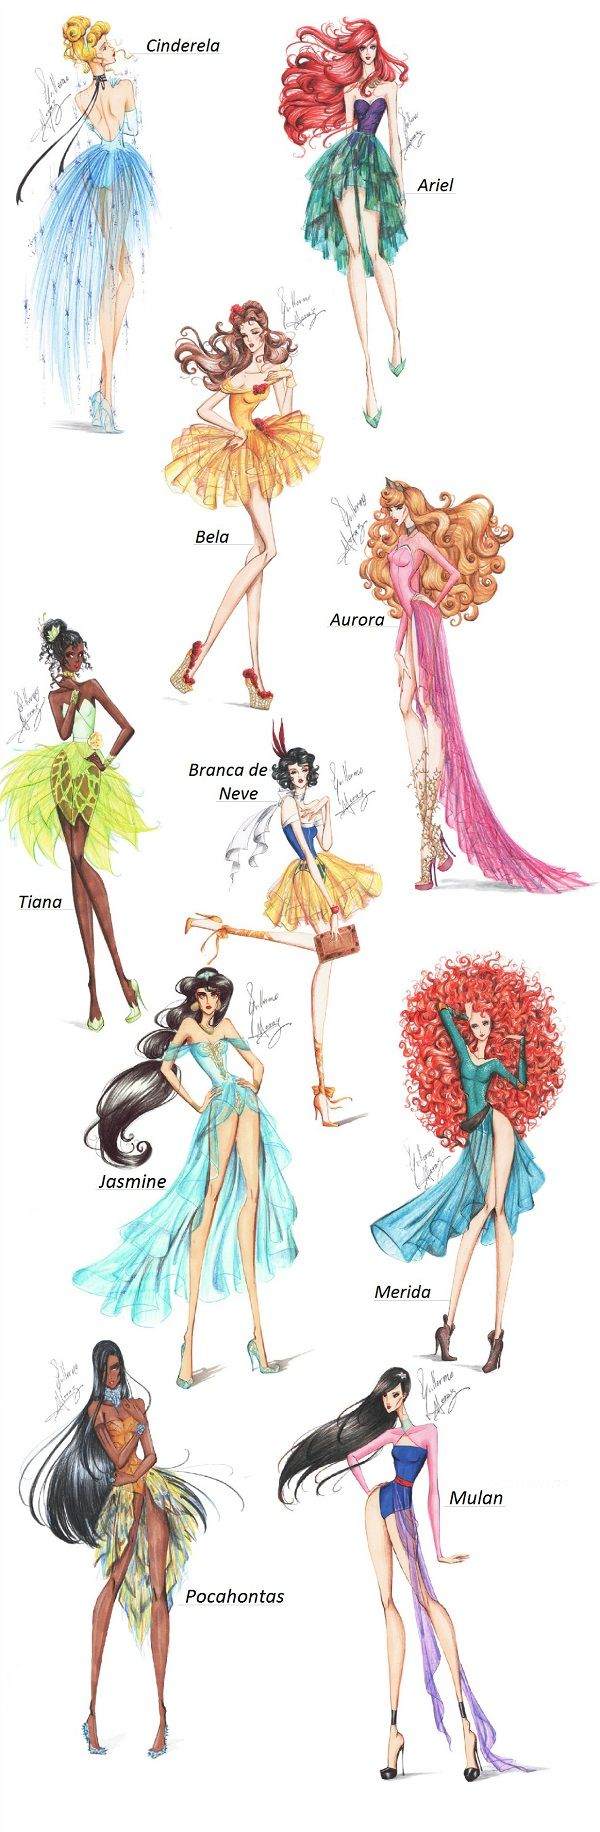 If the Disney Princesses were modern day models